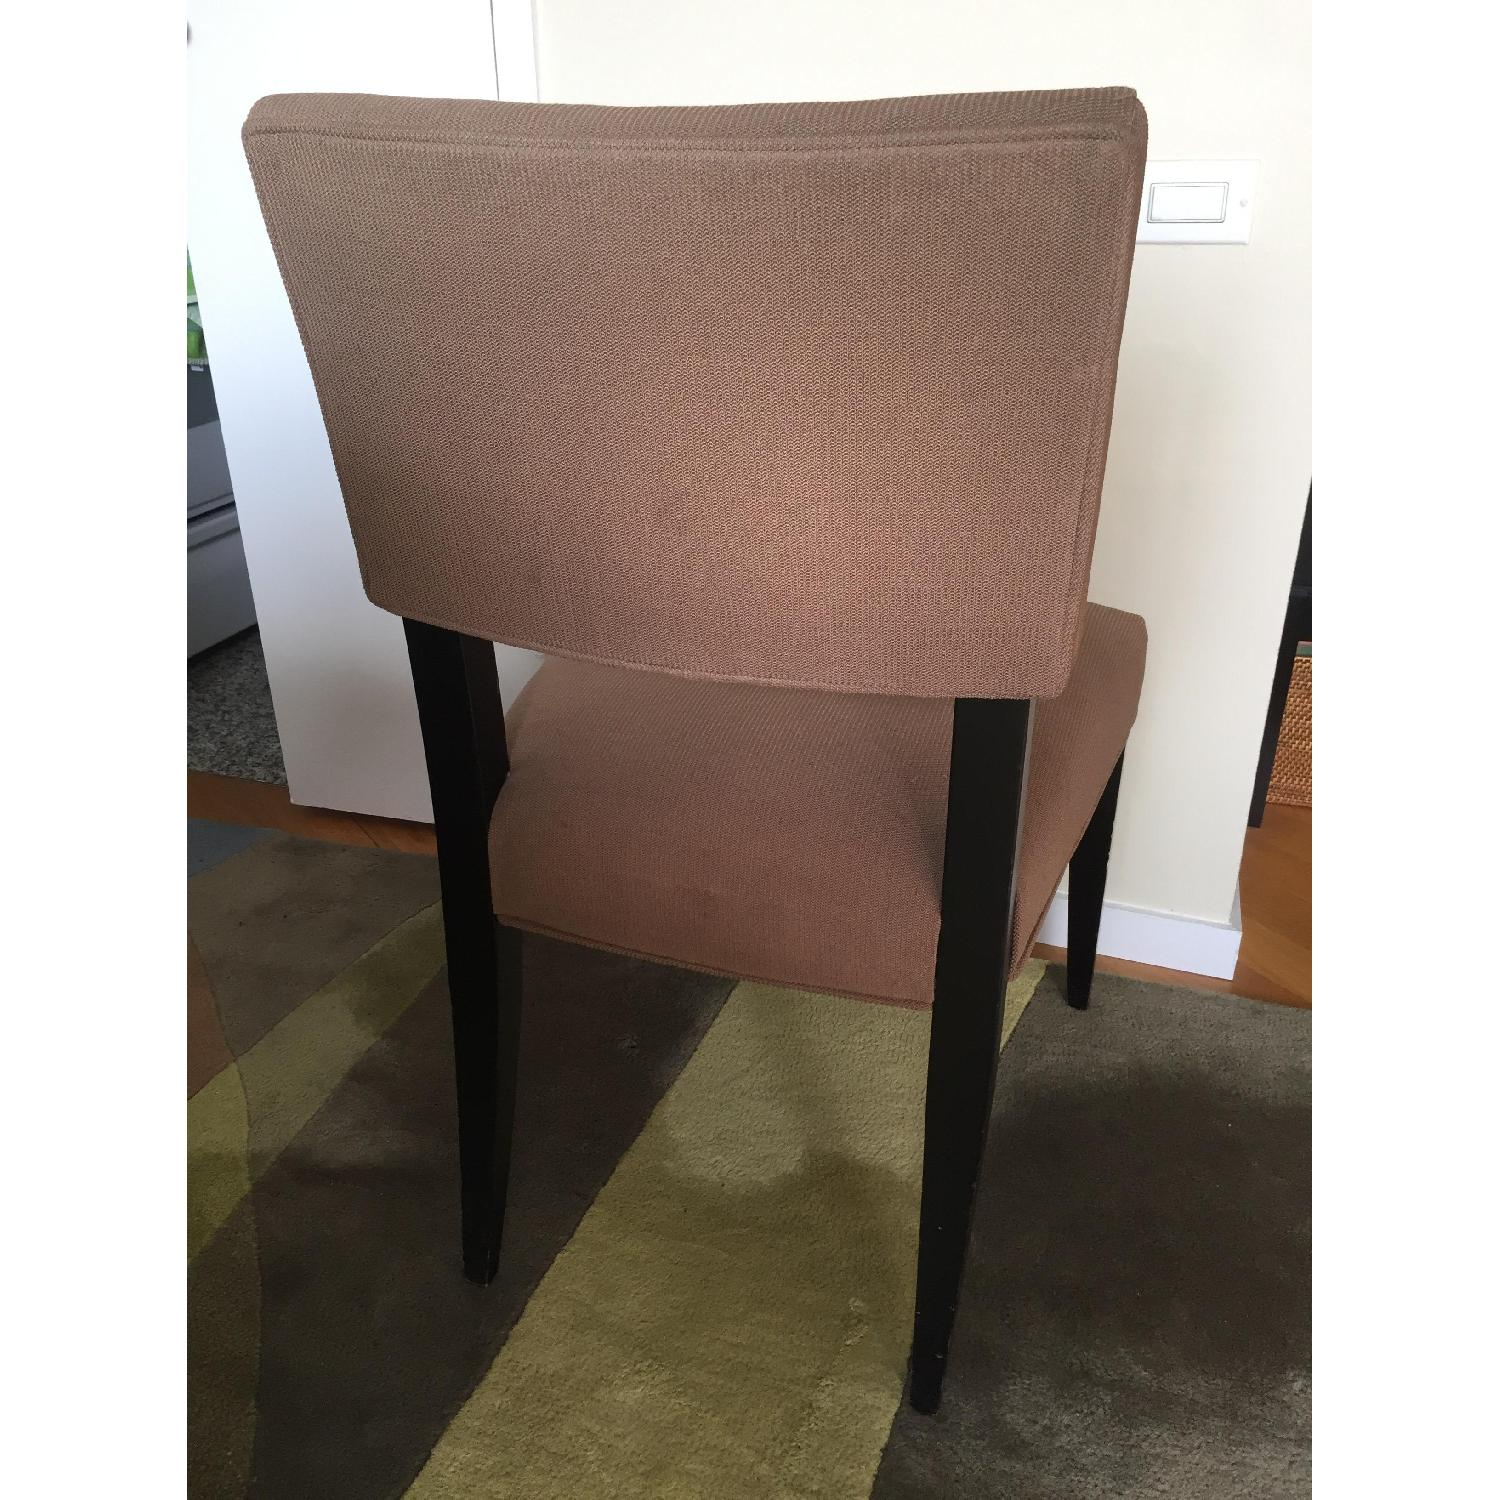 Crate & Barrel Cody Dining Chairs - image-6